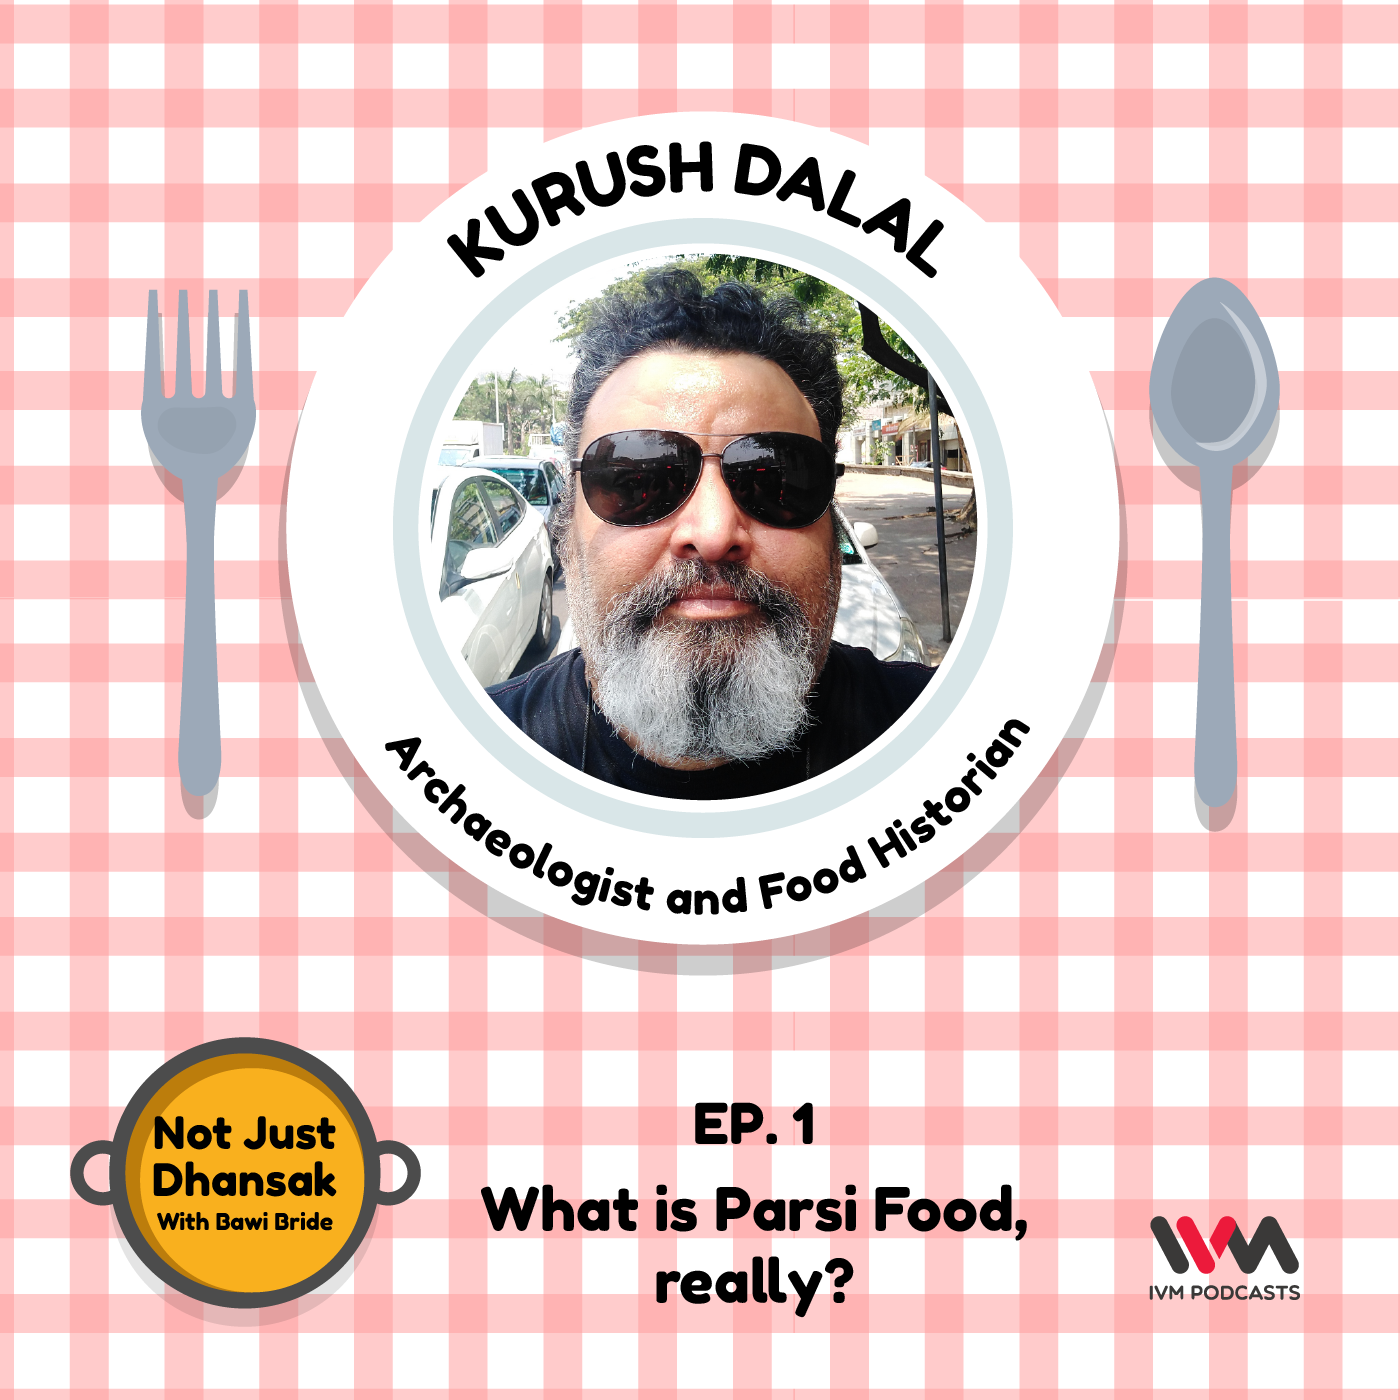 Ep. 01: What is Parsi Food, really?